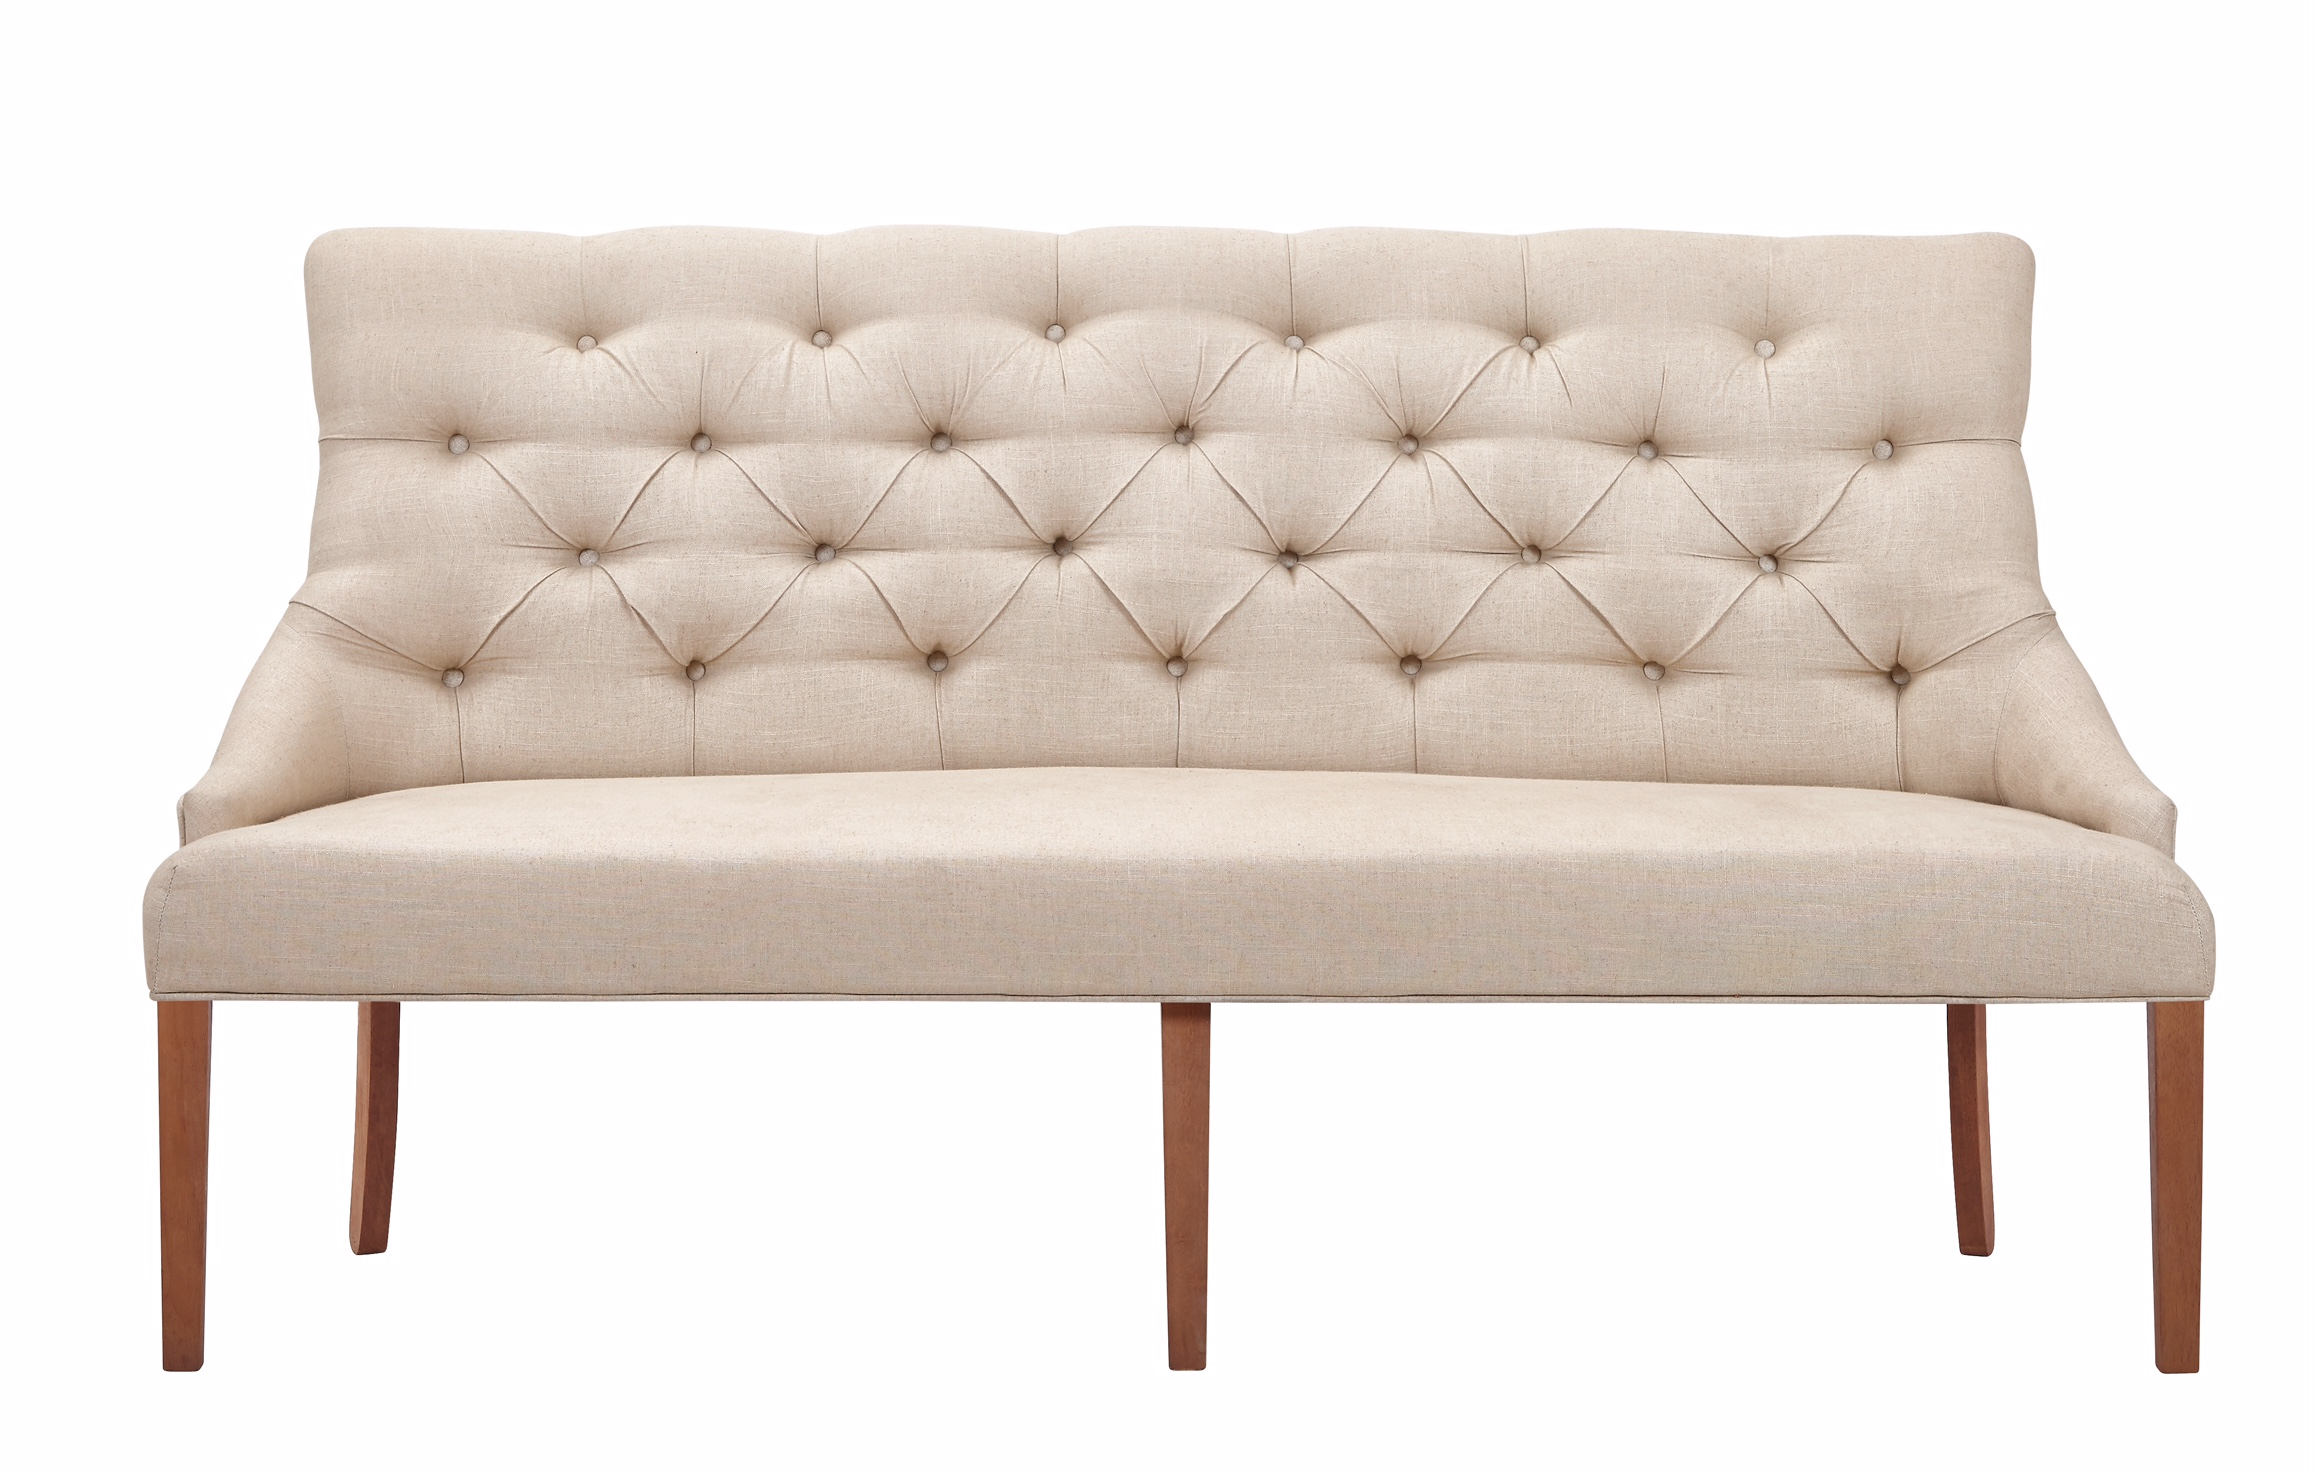 Belgian Luxe Fortnum Bench by Bassett Mirror at Alison Craig Home Furnishings